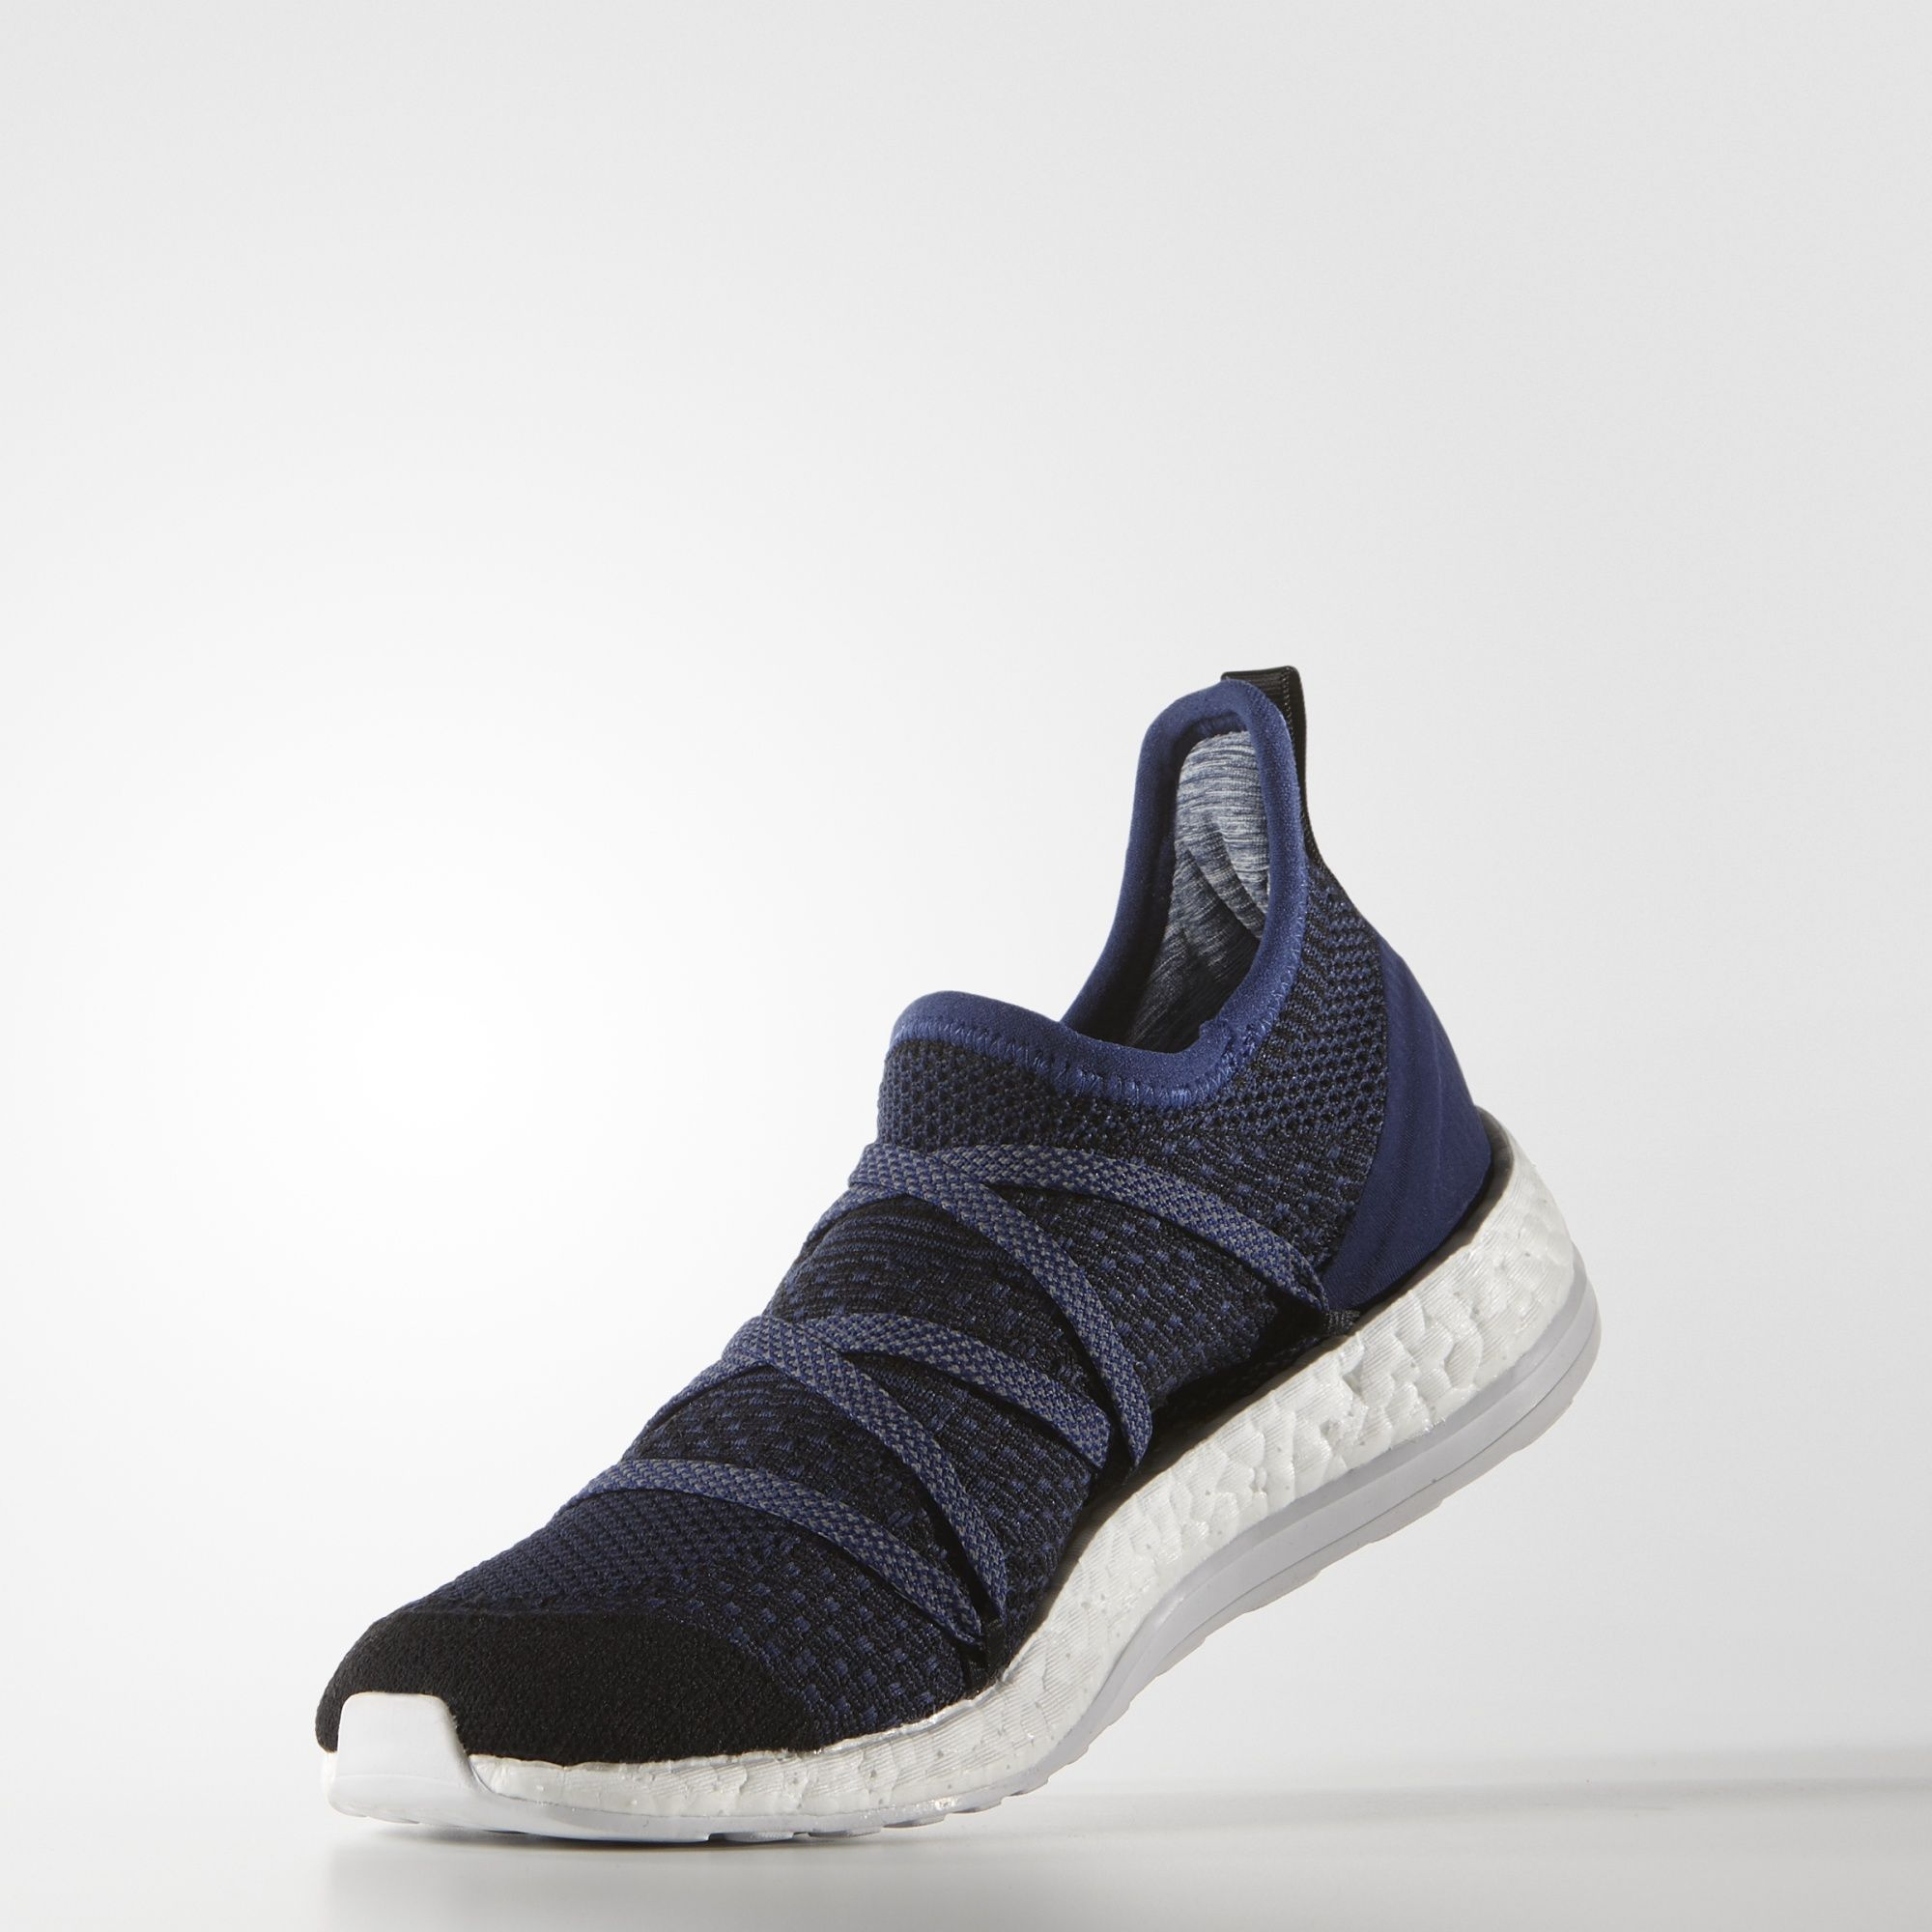 Adidas By Stella McCartney Pure Boost X